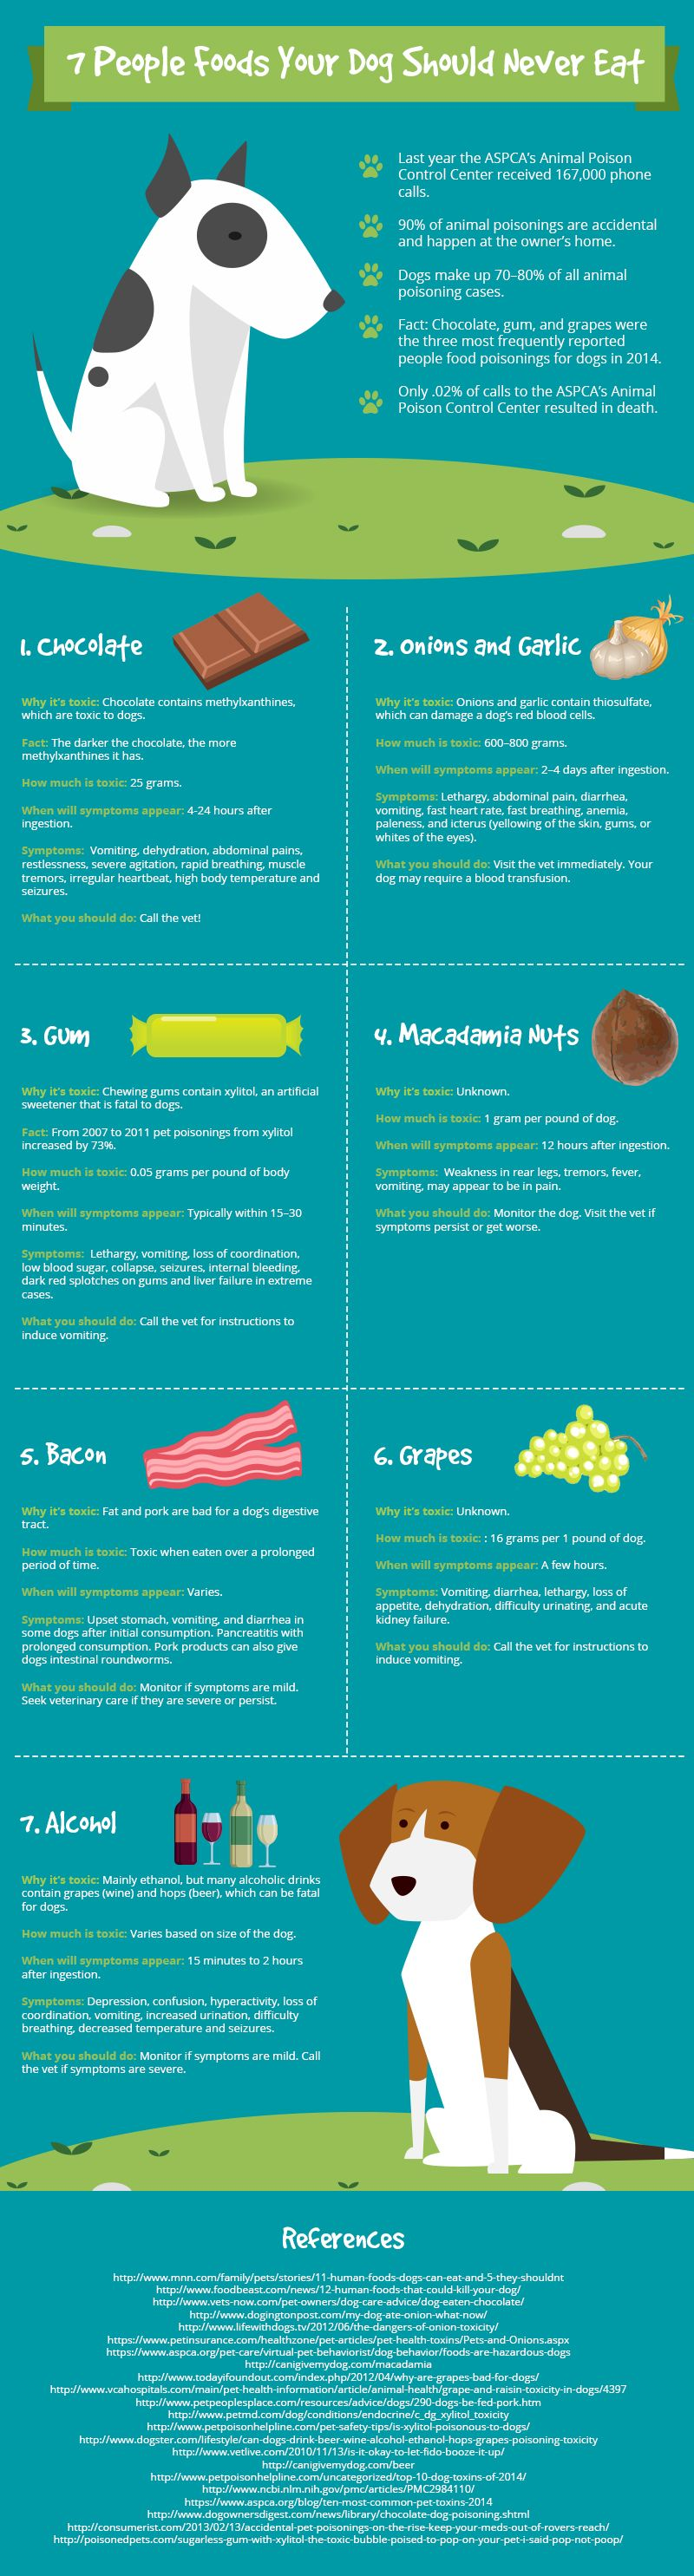 7 People Foods Your Dog Should Never Eat #infographic